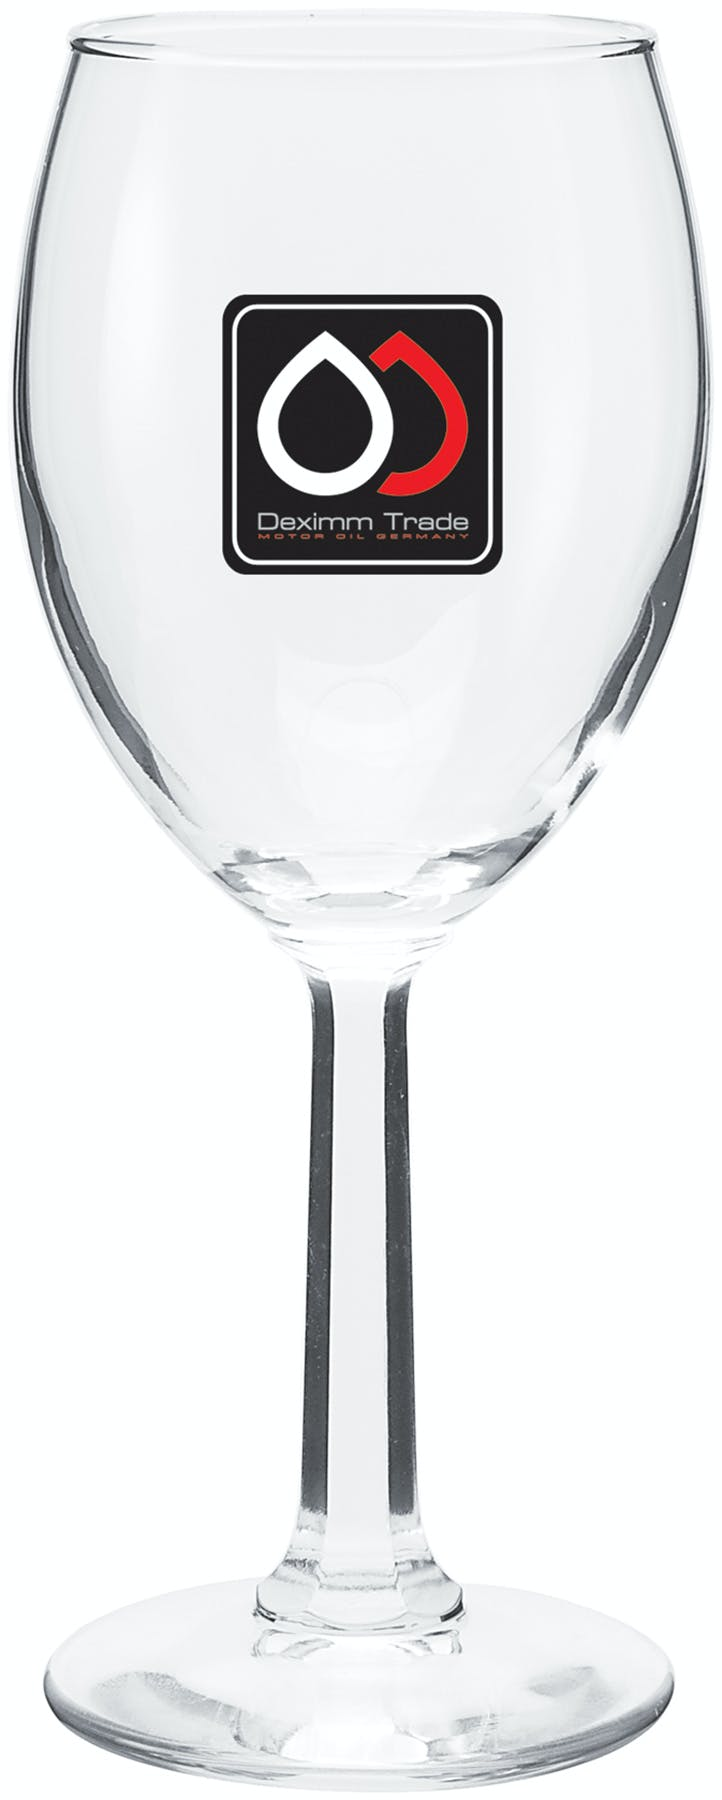 7.75 Oz. Wine Glass (Item # BDFOQ-CGJYJ) Wine glass sold by InkEasy